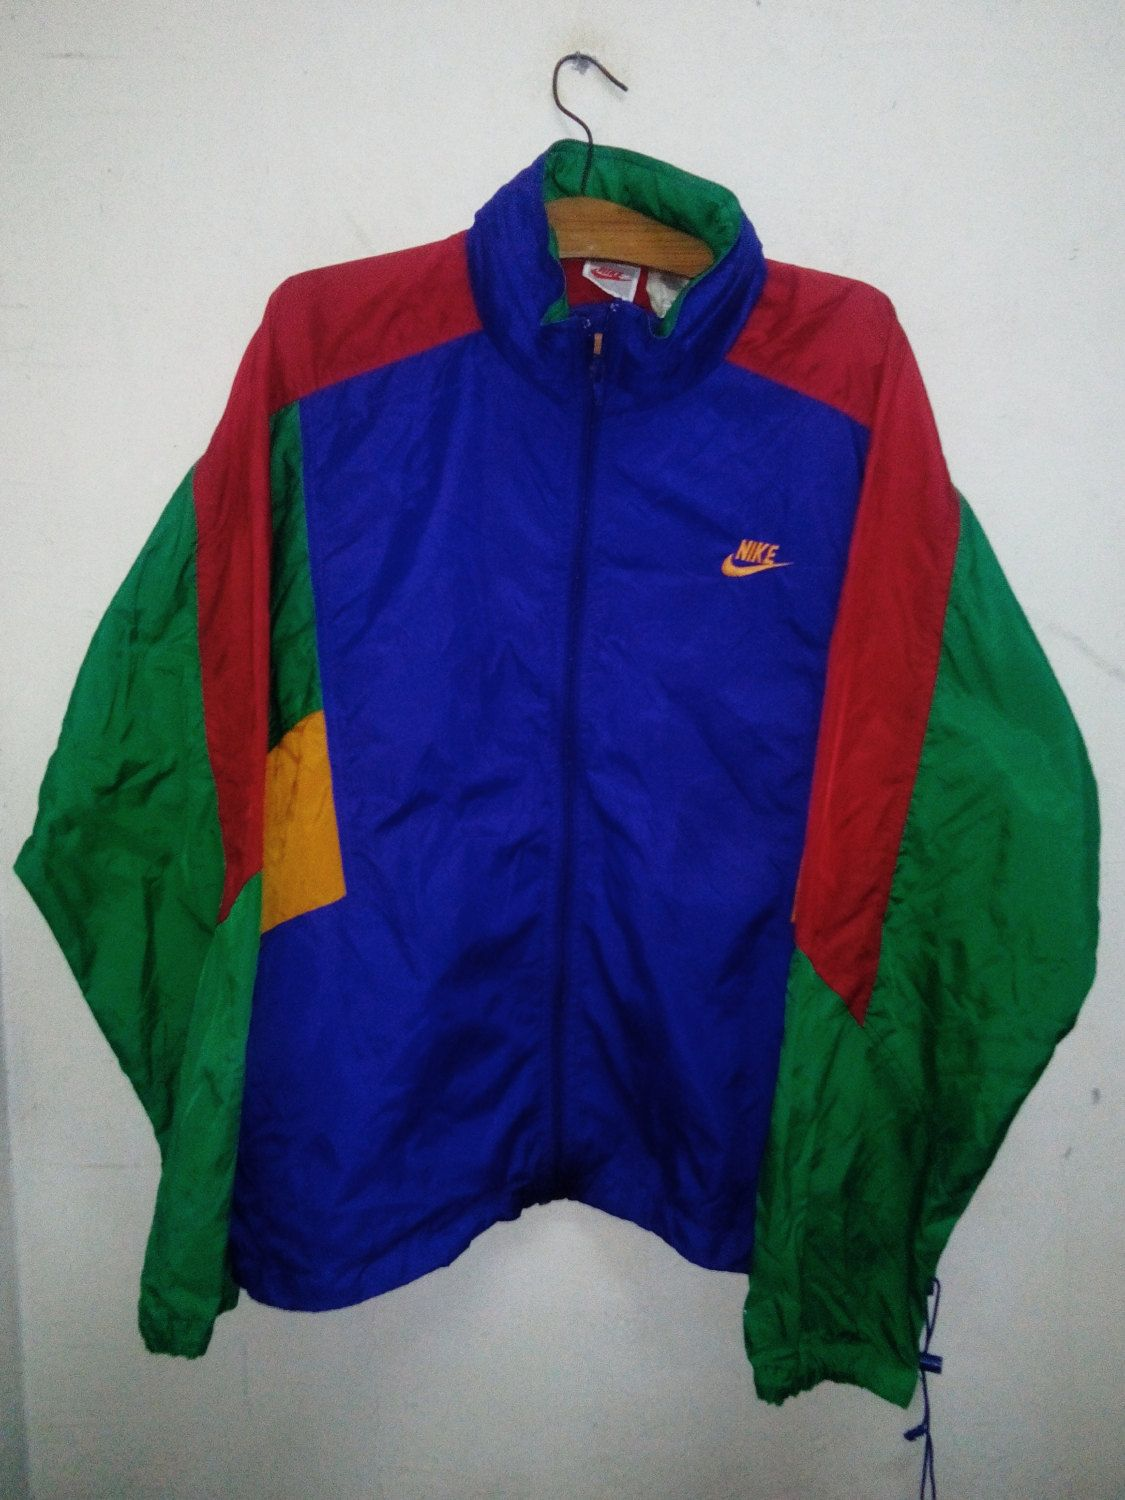 70b7c49d4768 Vintage Multicolor 90 s O.G Nike Windbreaker Tuck Hoodie Jacket Style with  Fabolous Celebrity Fashion Swag Sz L by Psychovault on Etsy